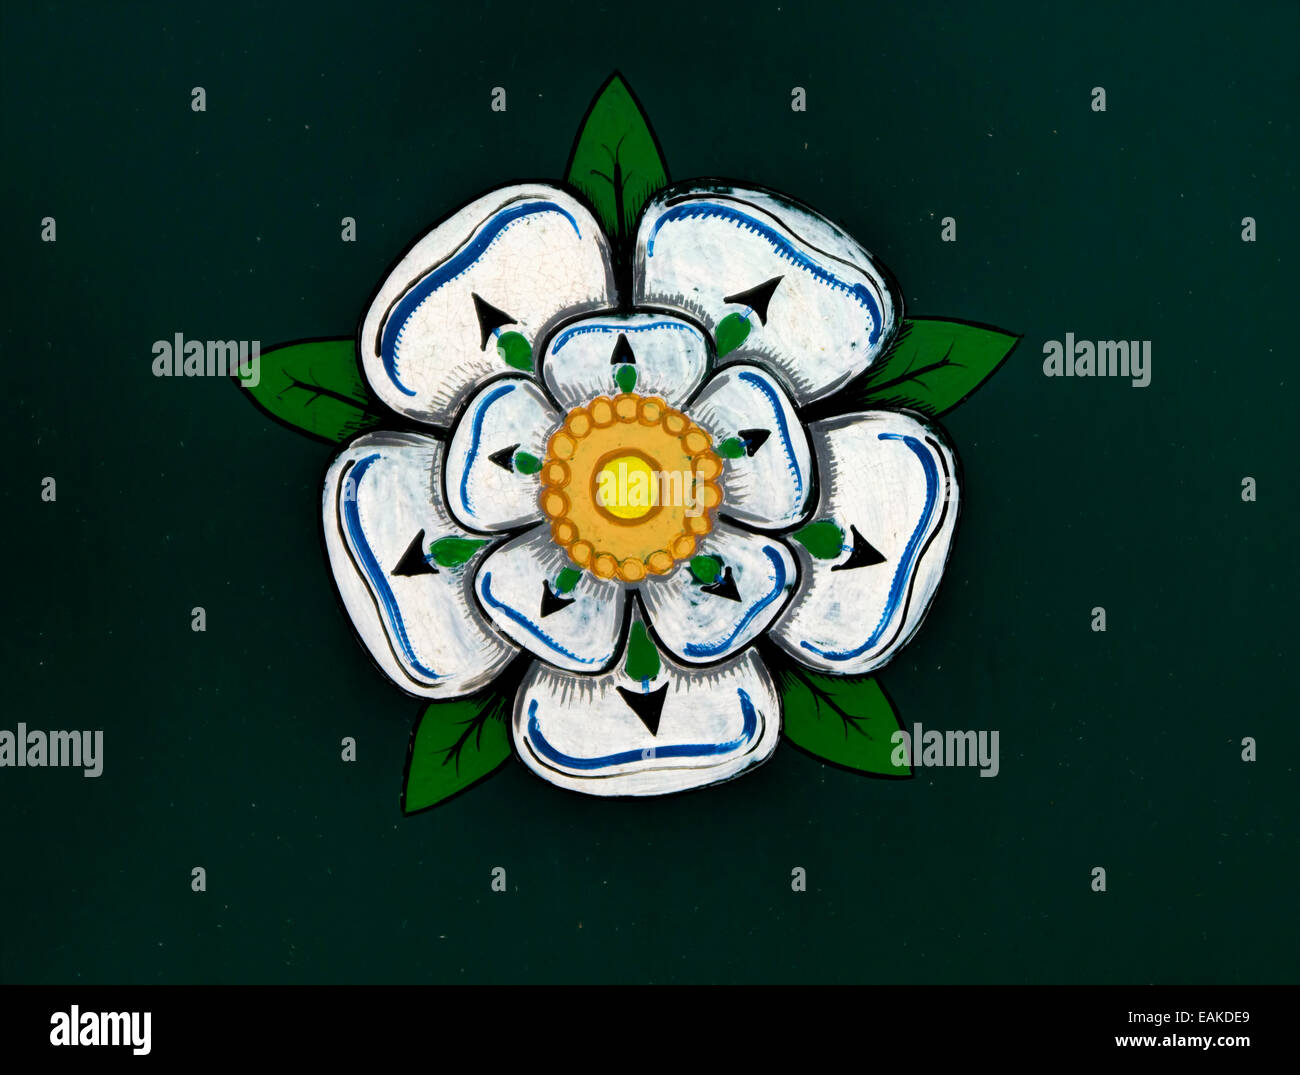 White rose symbol house york stock photos white rose symbol house a canal barge traditional painting of the white rose of york stock image buycottarizona Choice Image